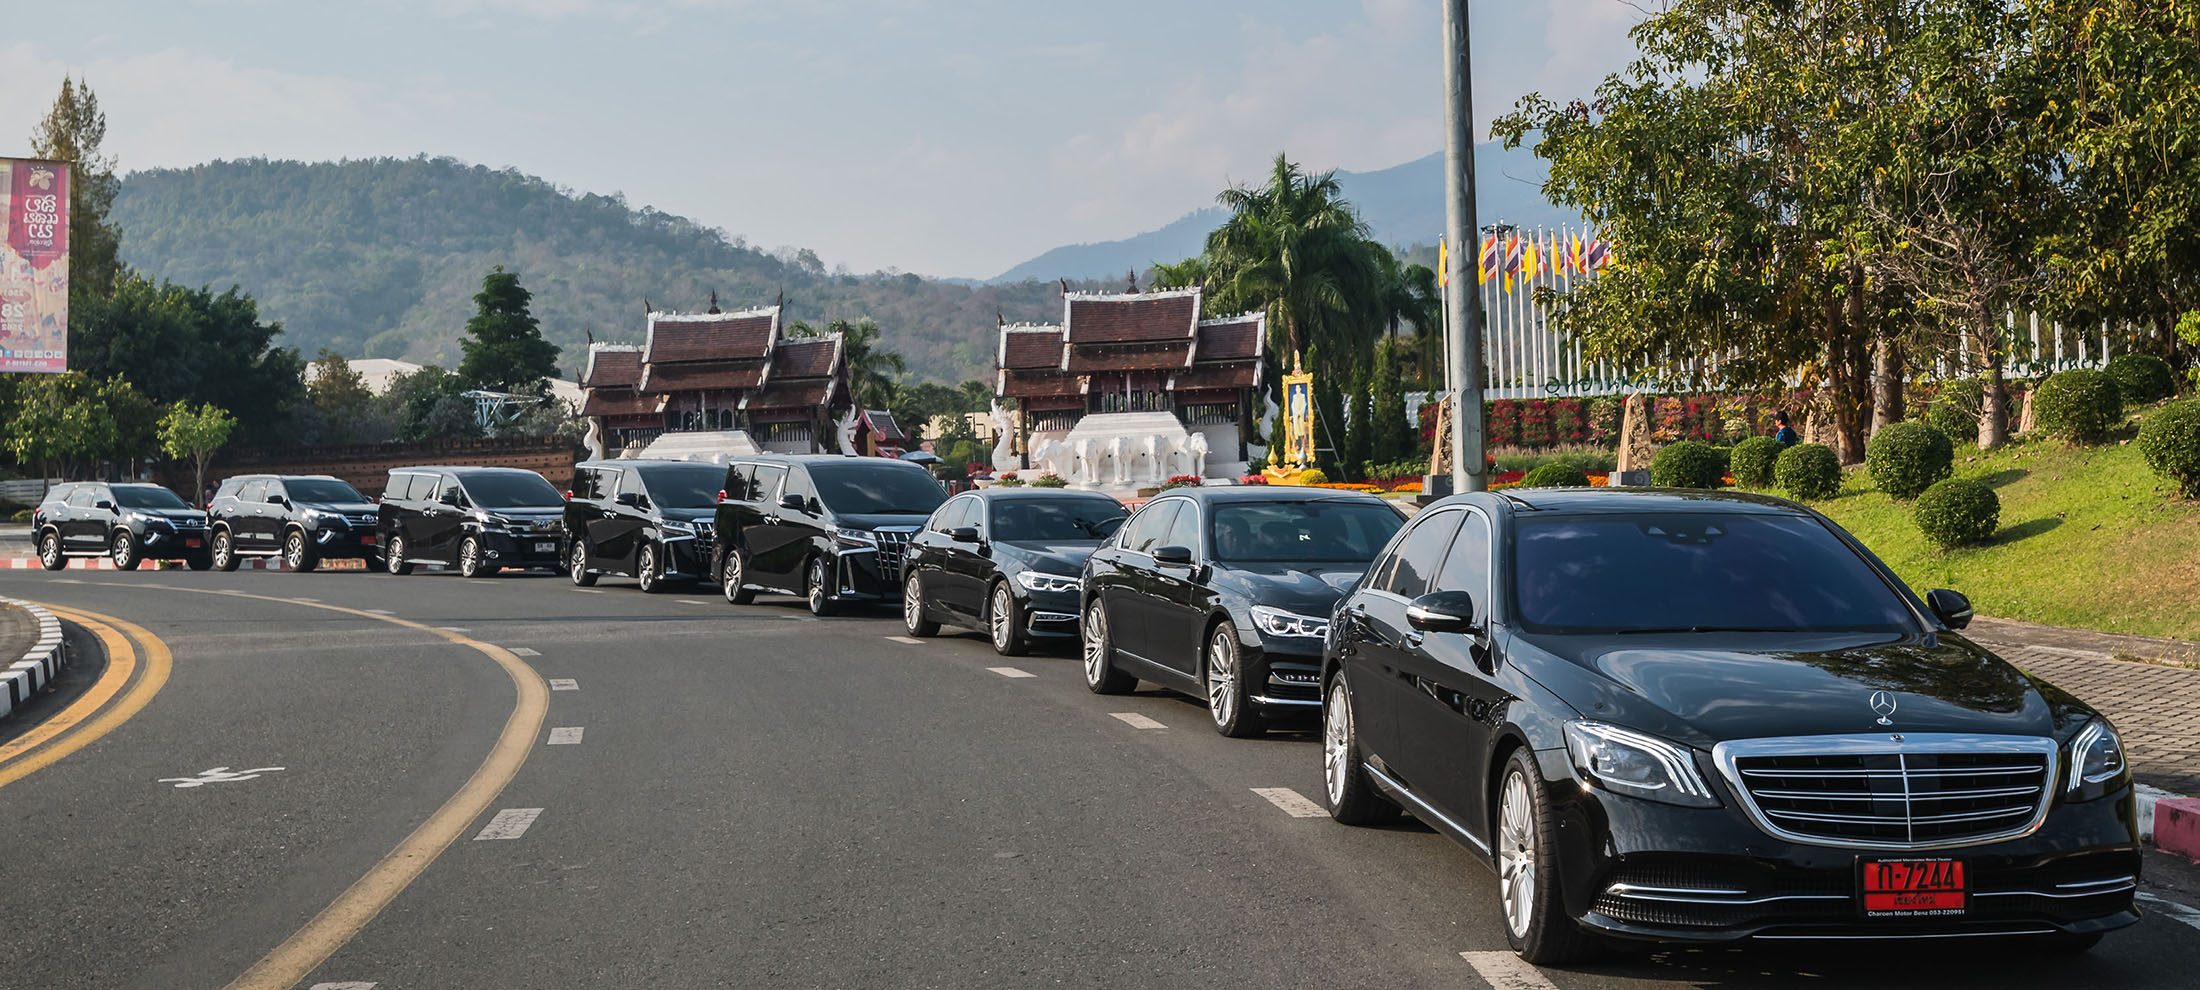 brand new car for rental by chiang mai alphard